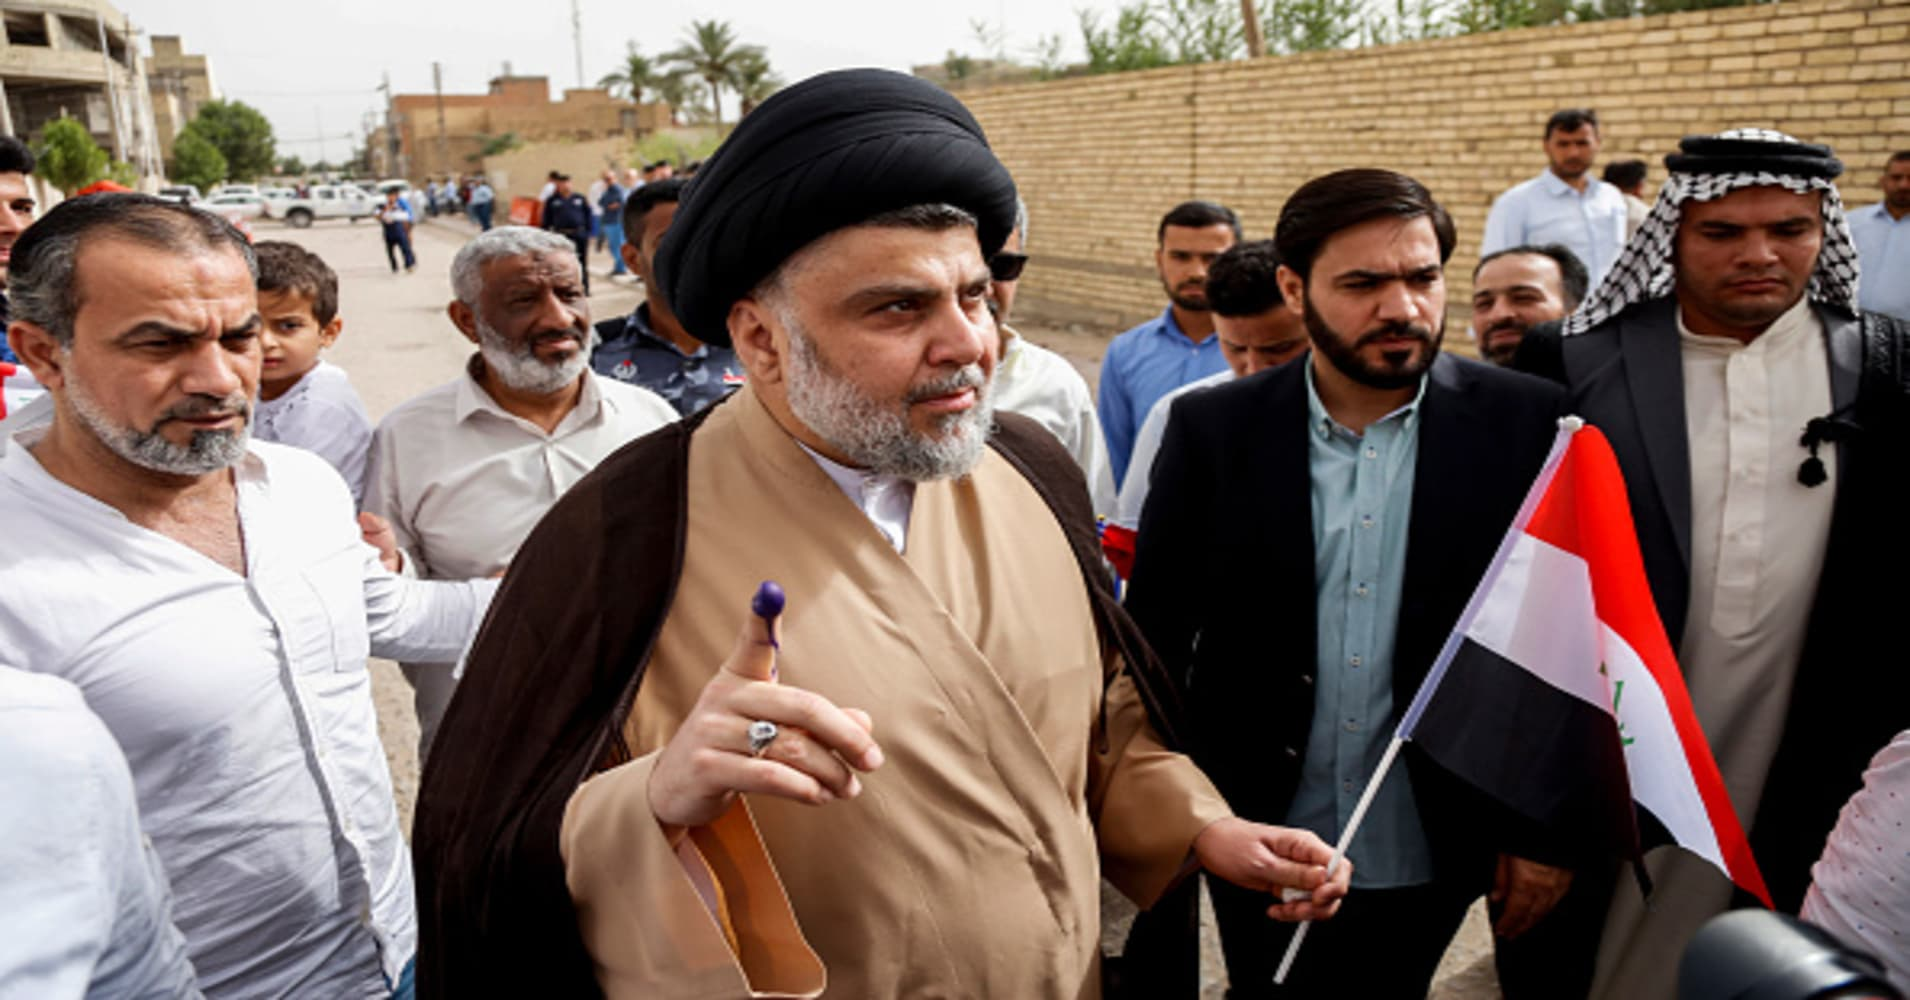 Iraq election: Who is Moqtada al Sadr?